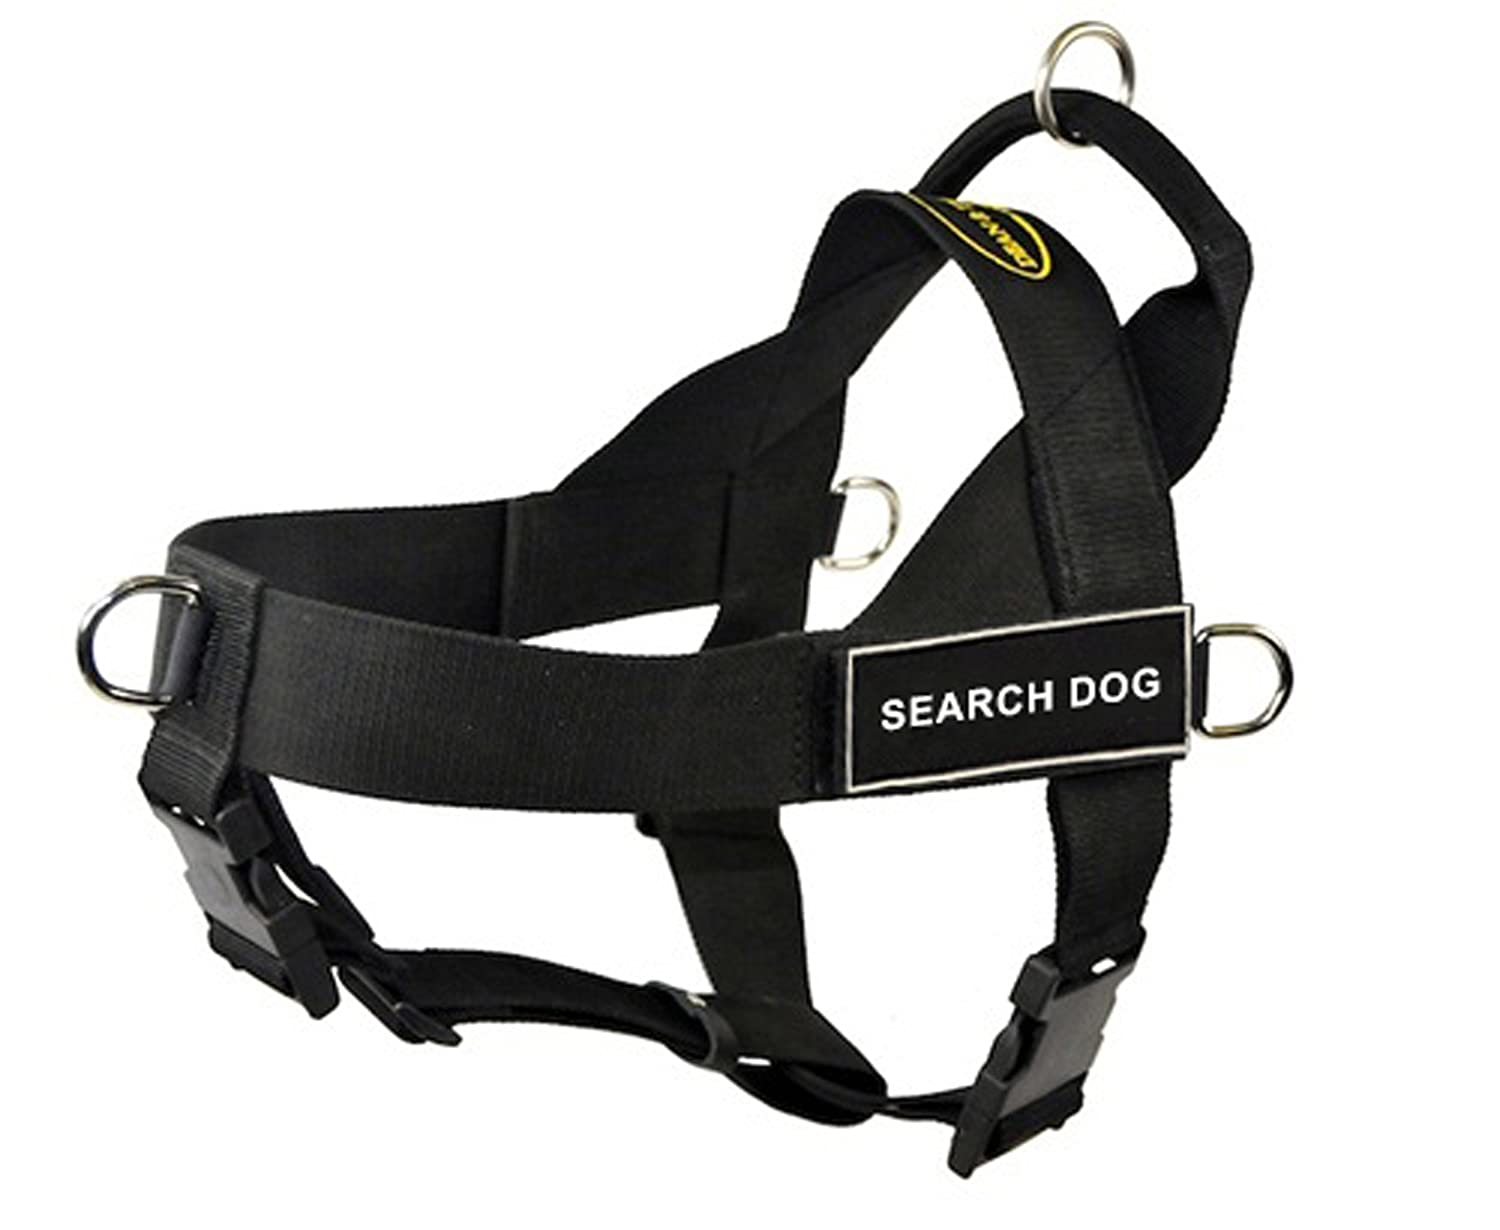 Dean & Tyler Universal No Pull Dog Harness, Search Dog, Small, Fits Girth, 61cm to 69cm, Black